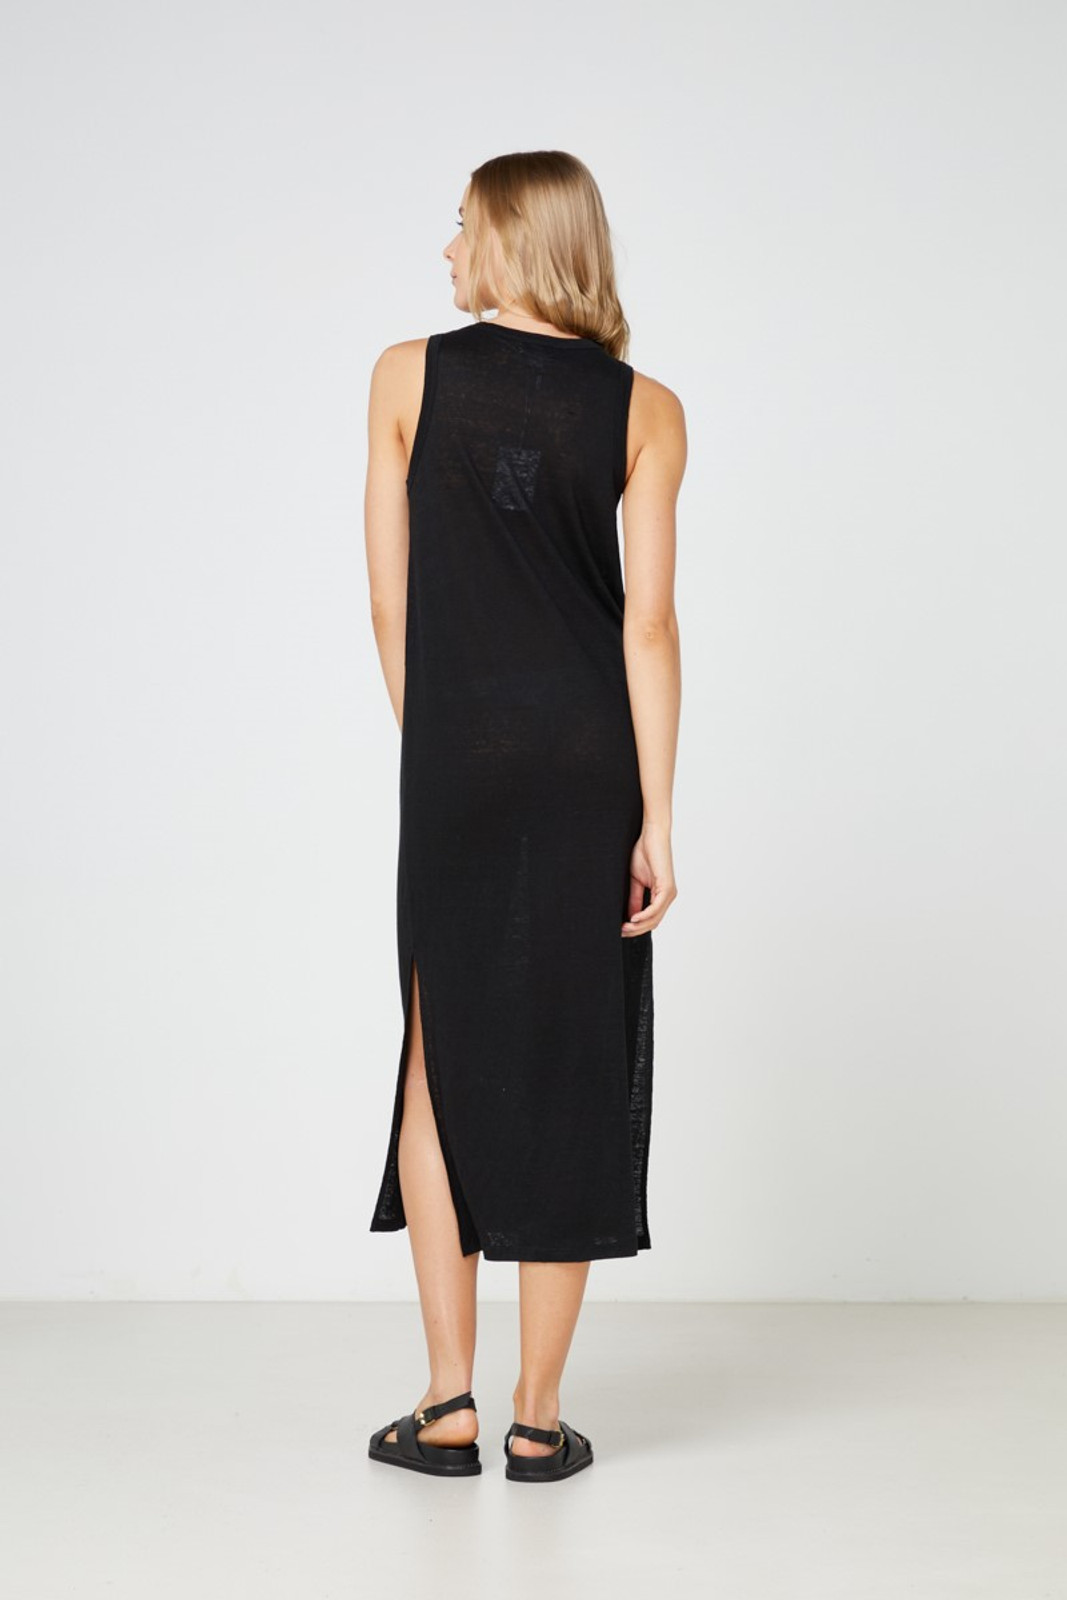 Elka Collective EC Linen Tank Dress 2.0 Black  5